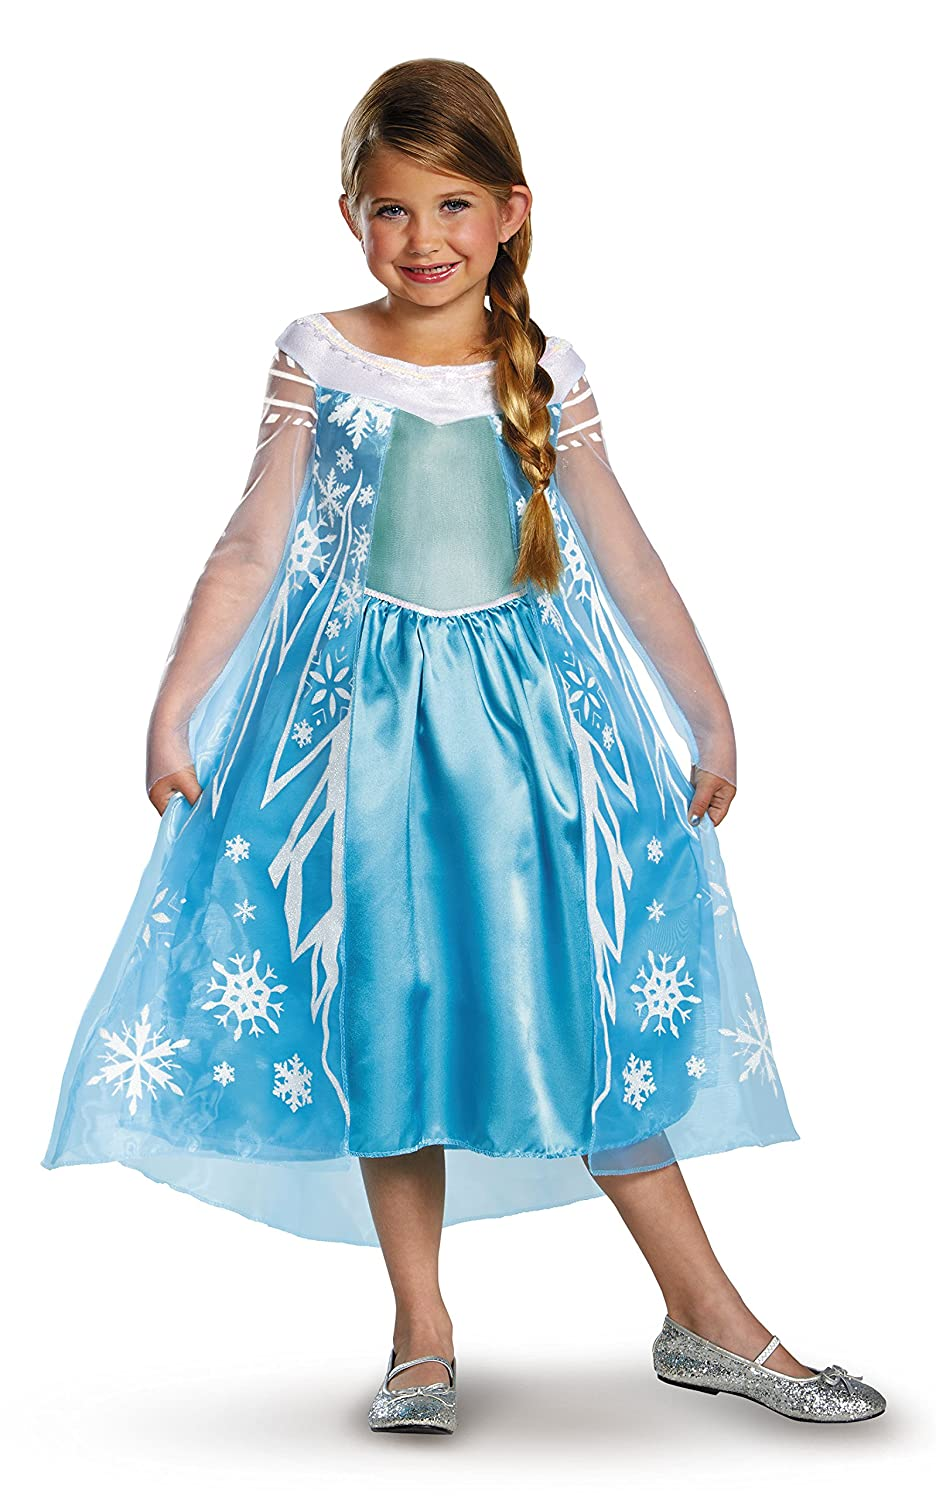 Amazon.com: Disney\'s Frozen Elsa Deluxe Girl\'s Costume, 4-6X: Toys ...